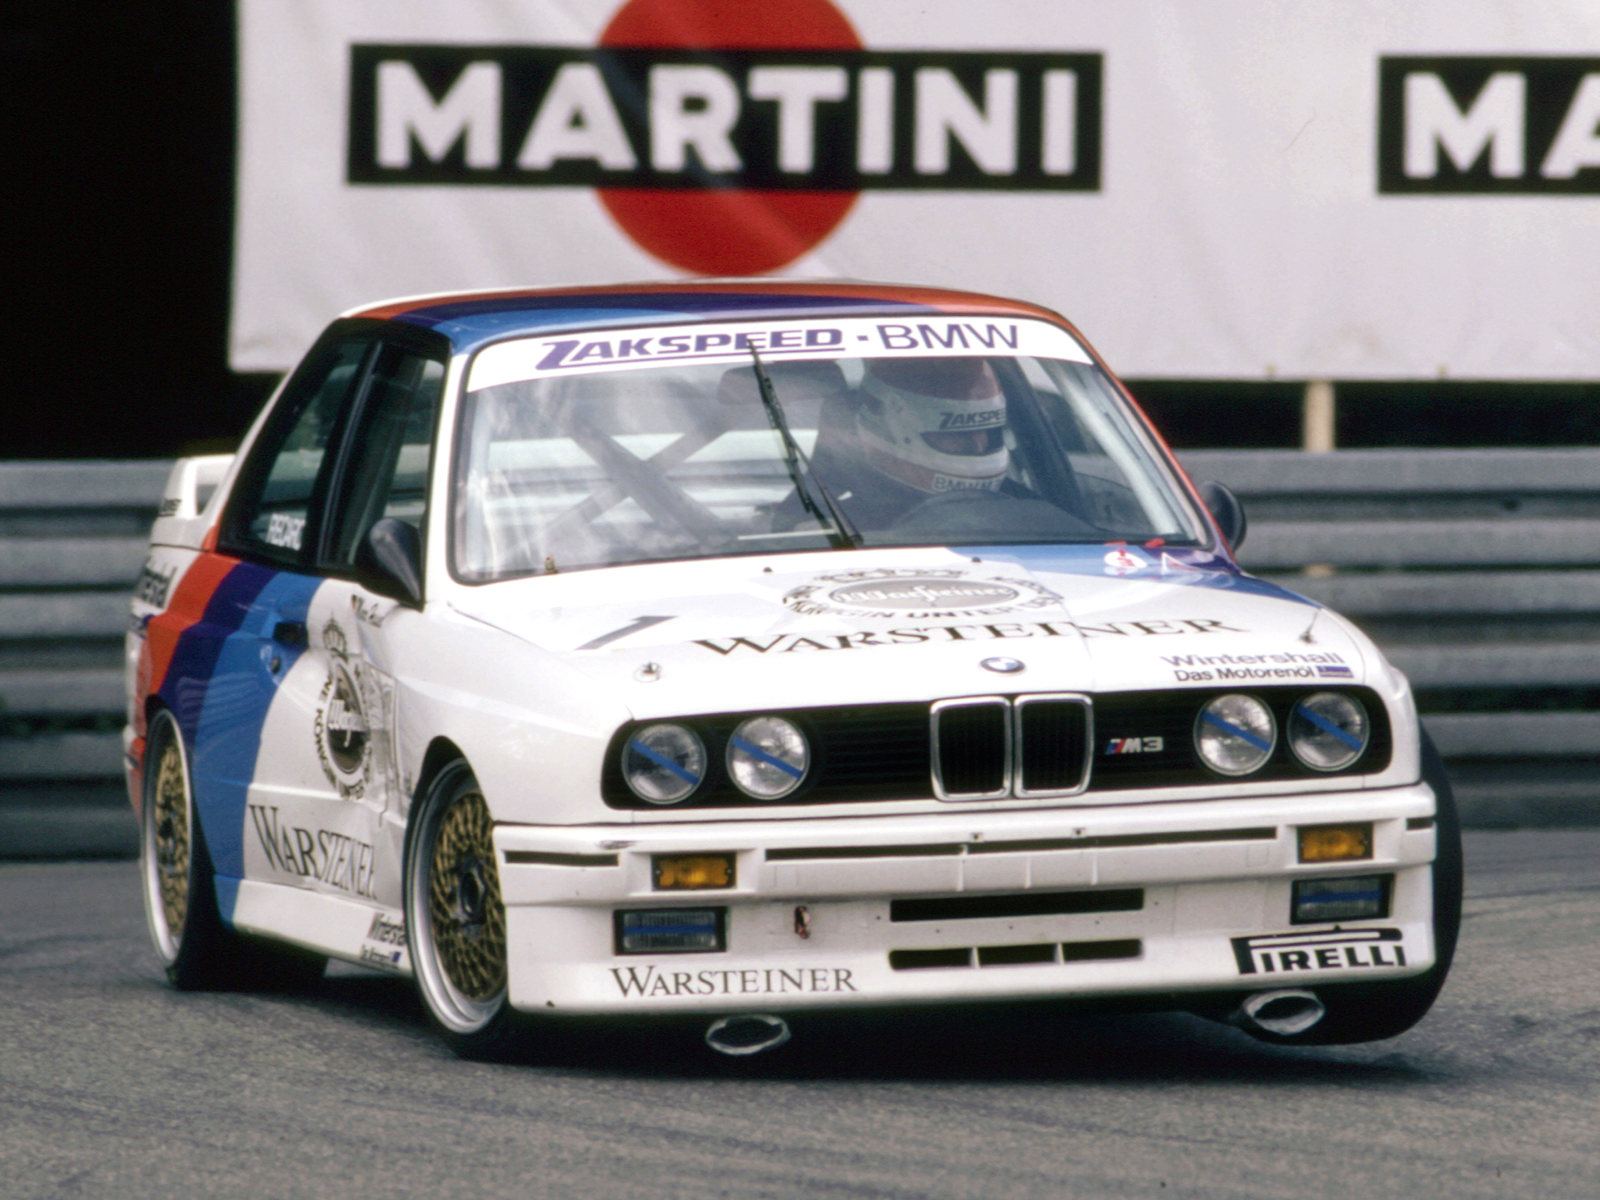 Rally Car Wallpapers Free 1987 Bmw M3 Group A Dtm E30 Race Racing M 3 Fn Wallpaper